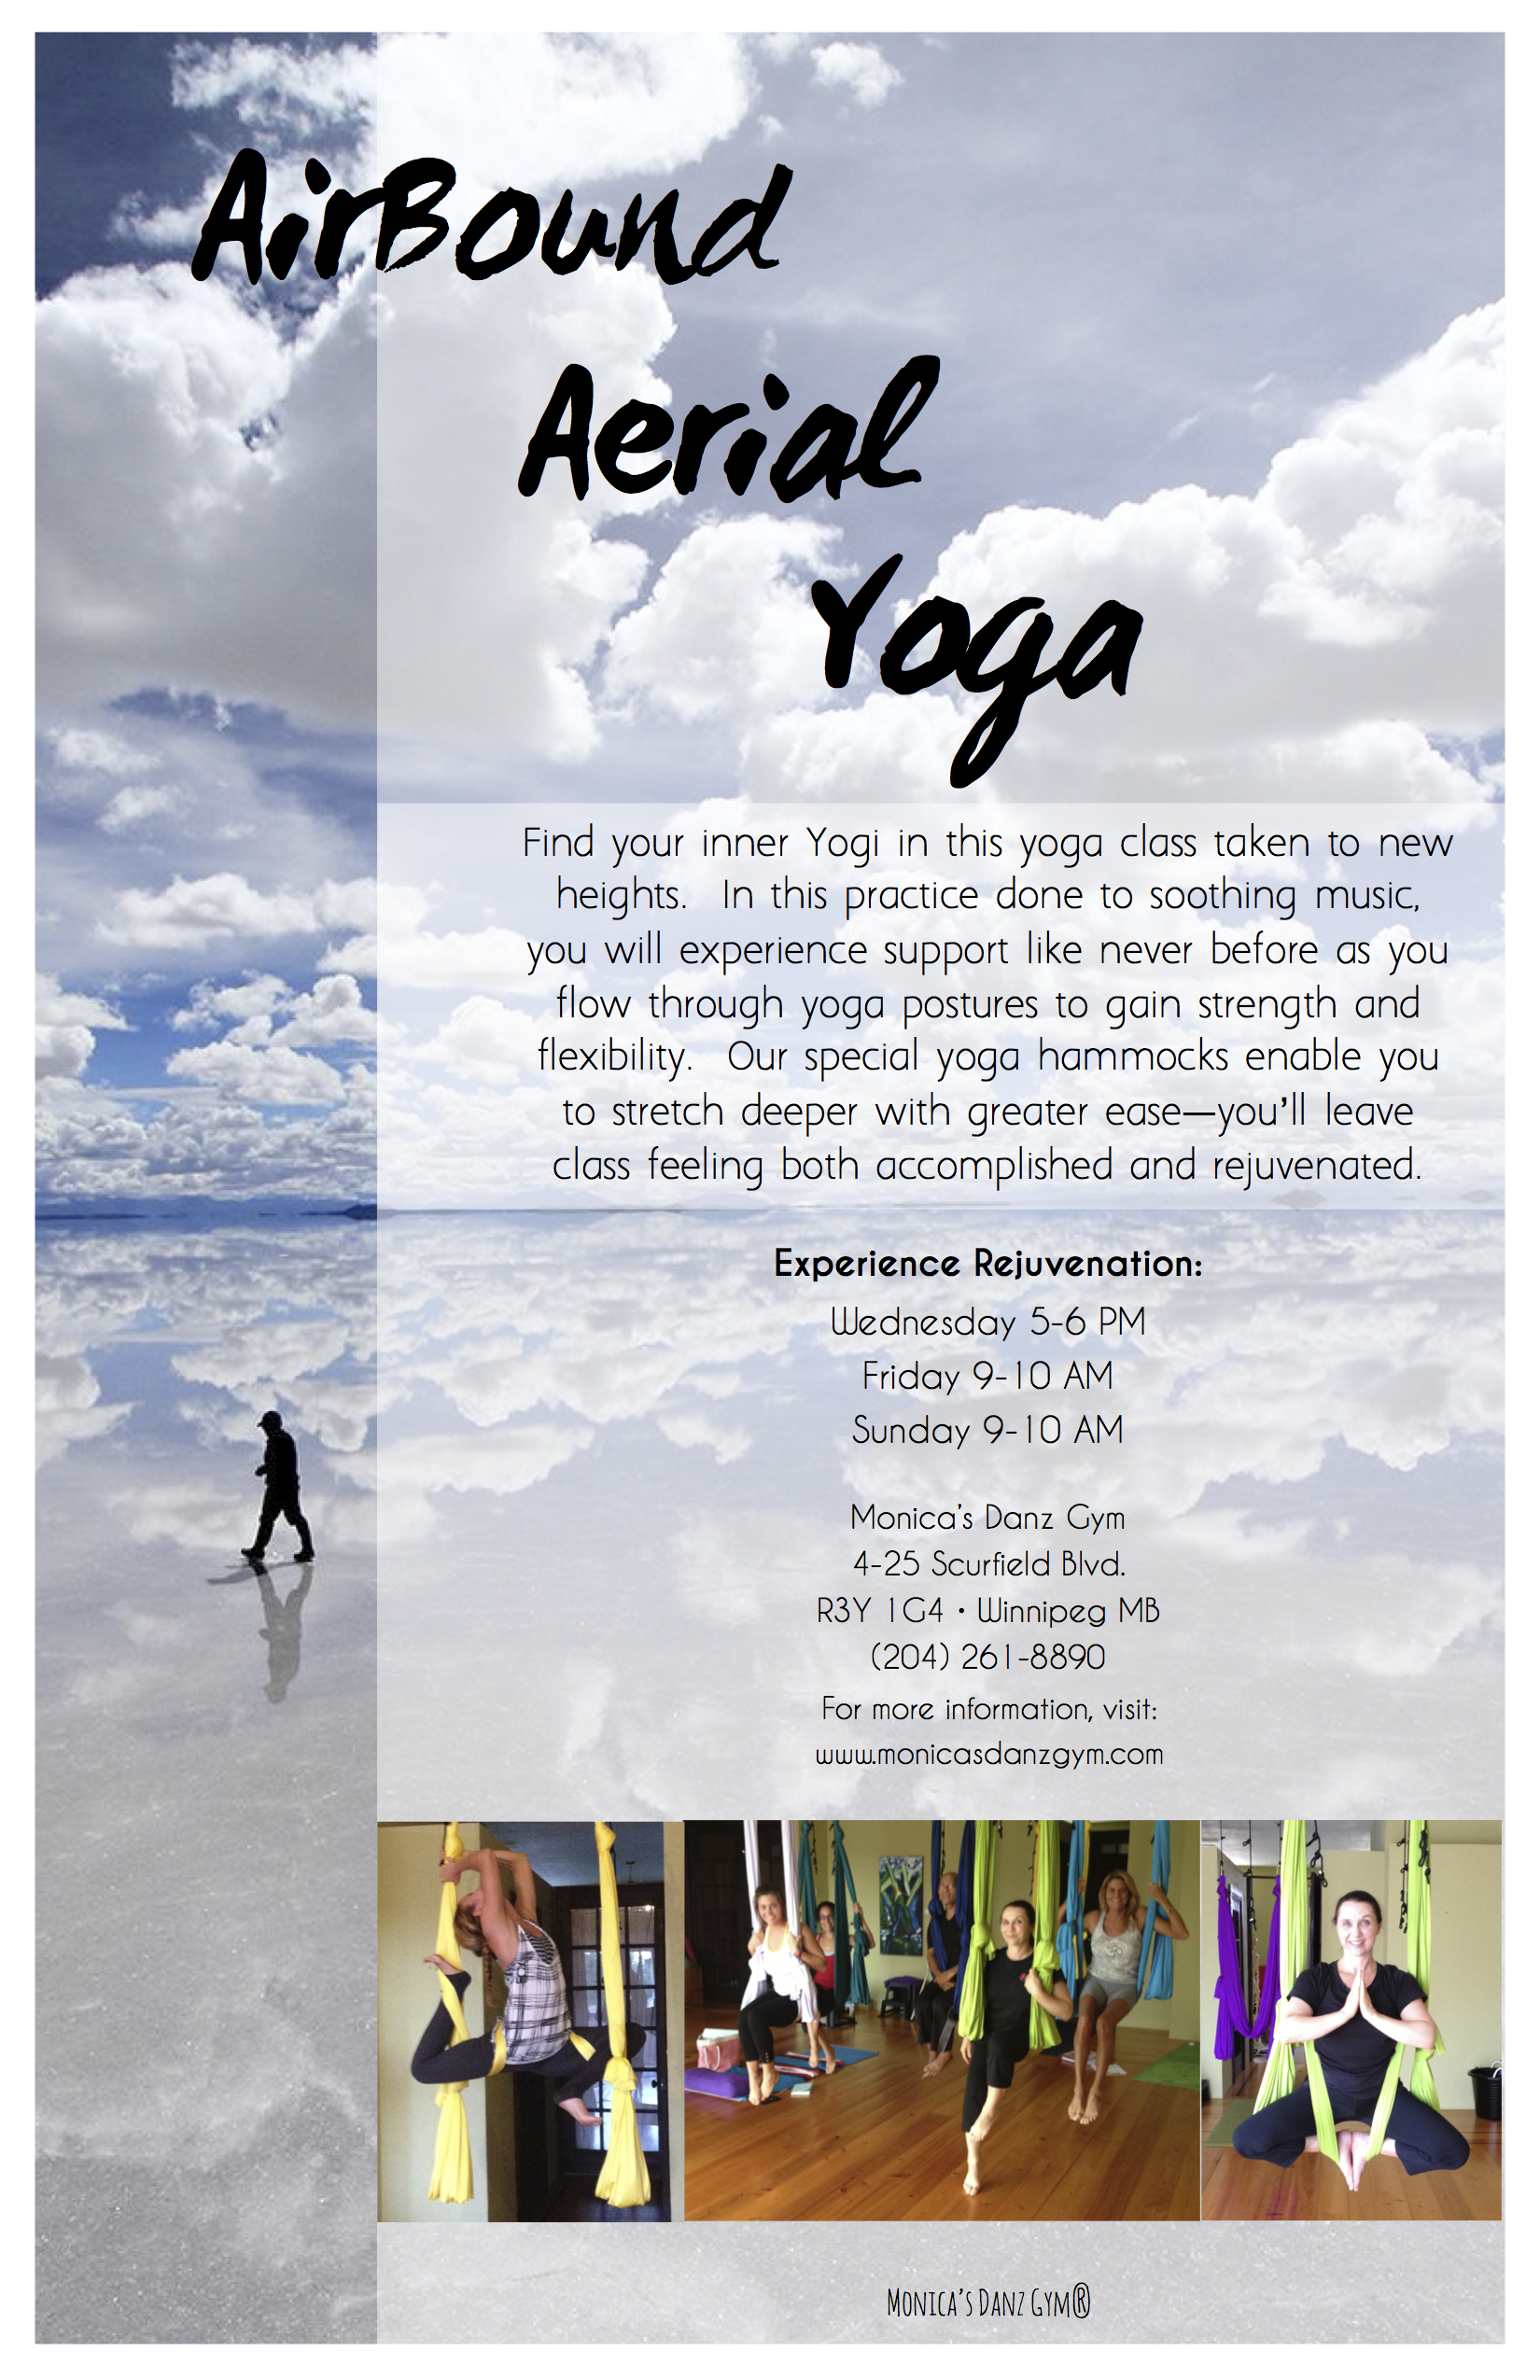 Aerial Yoga Poses Poster Yoga Poses For Beginners